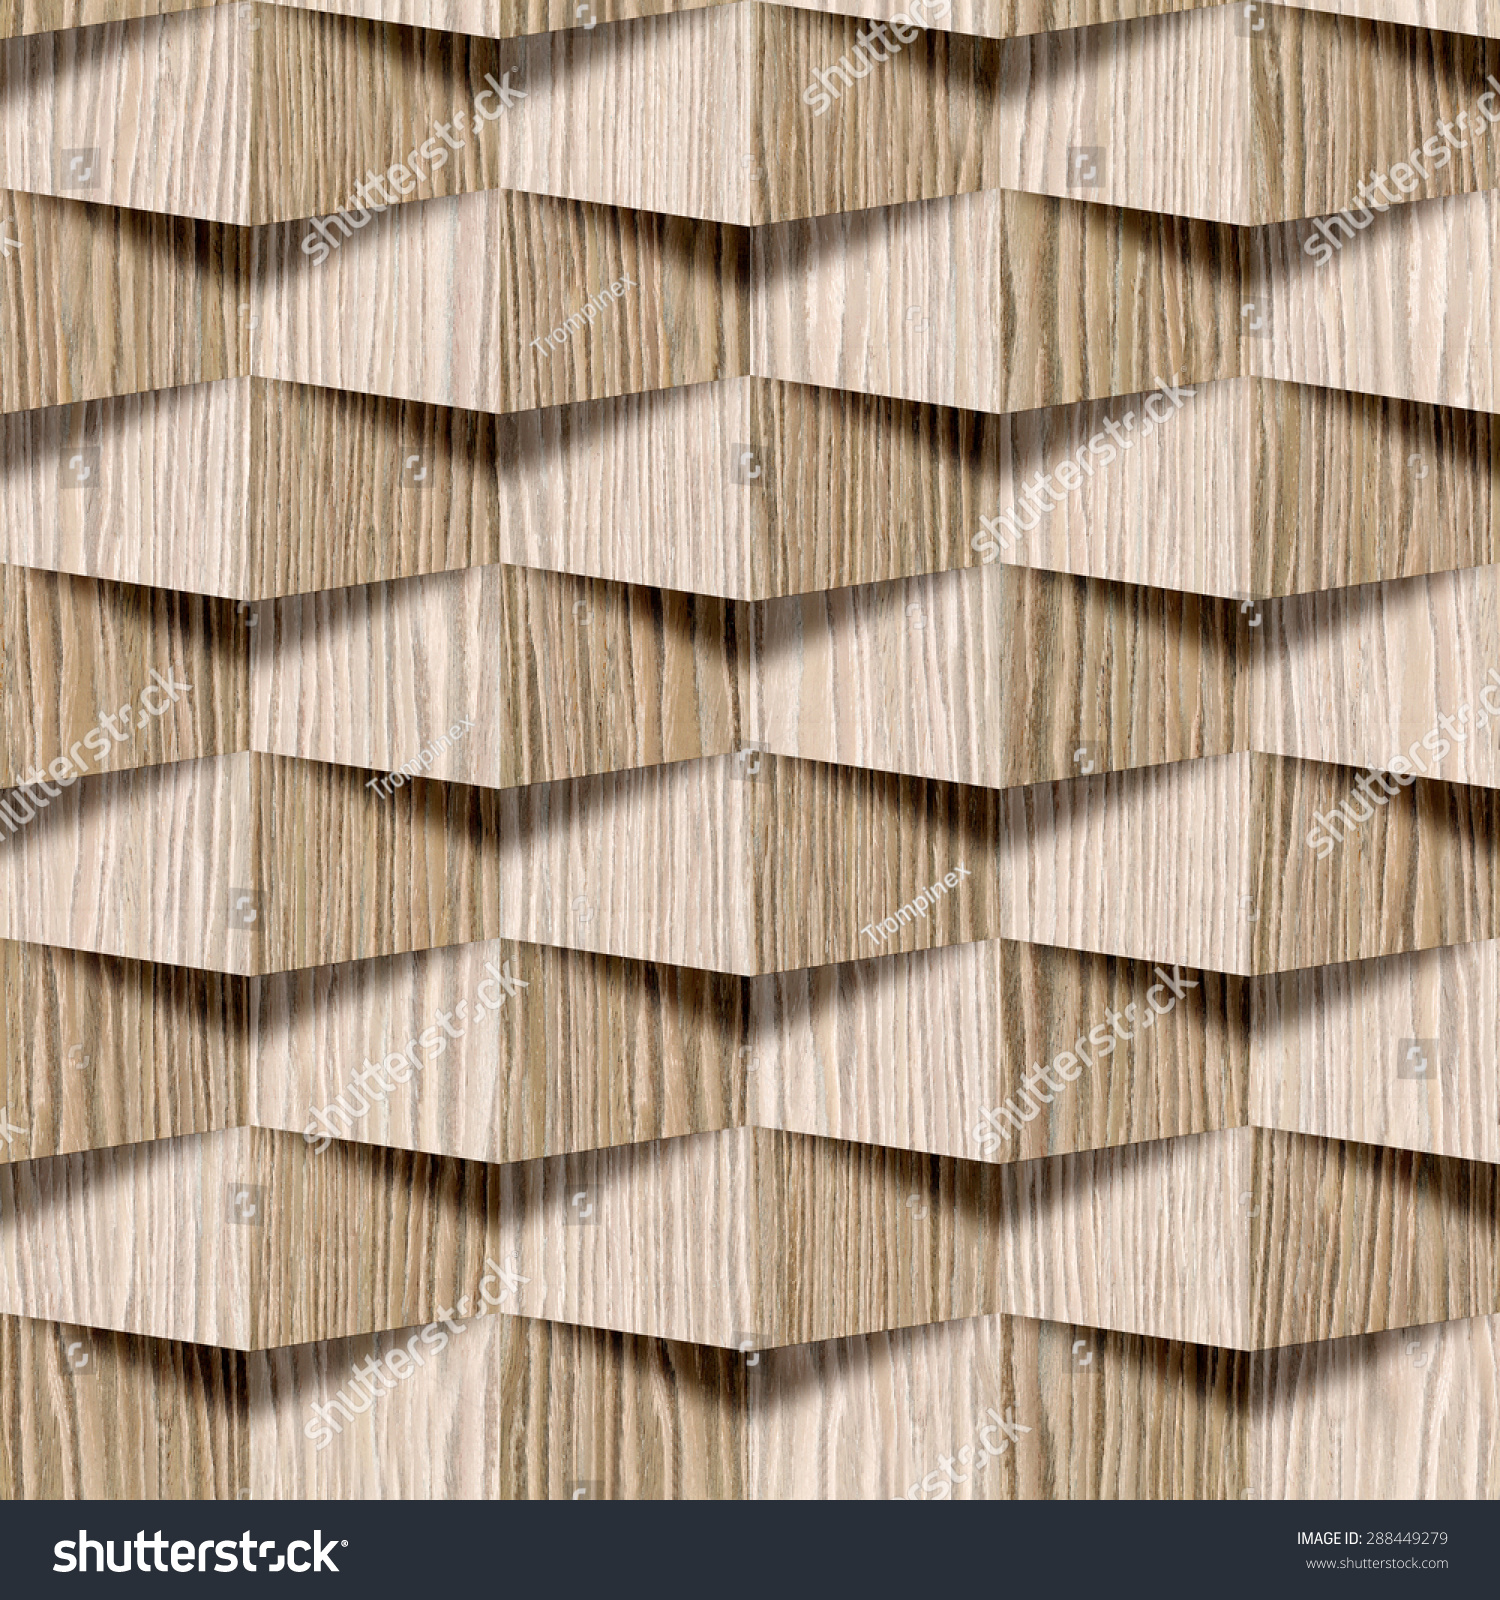 wall decorative tiles inarace - Decorative Wall Tiles